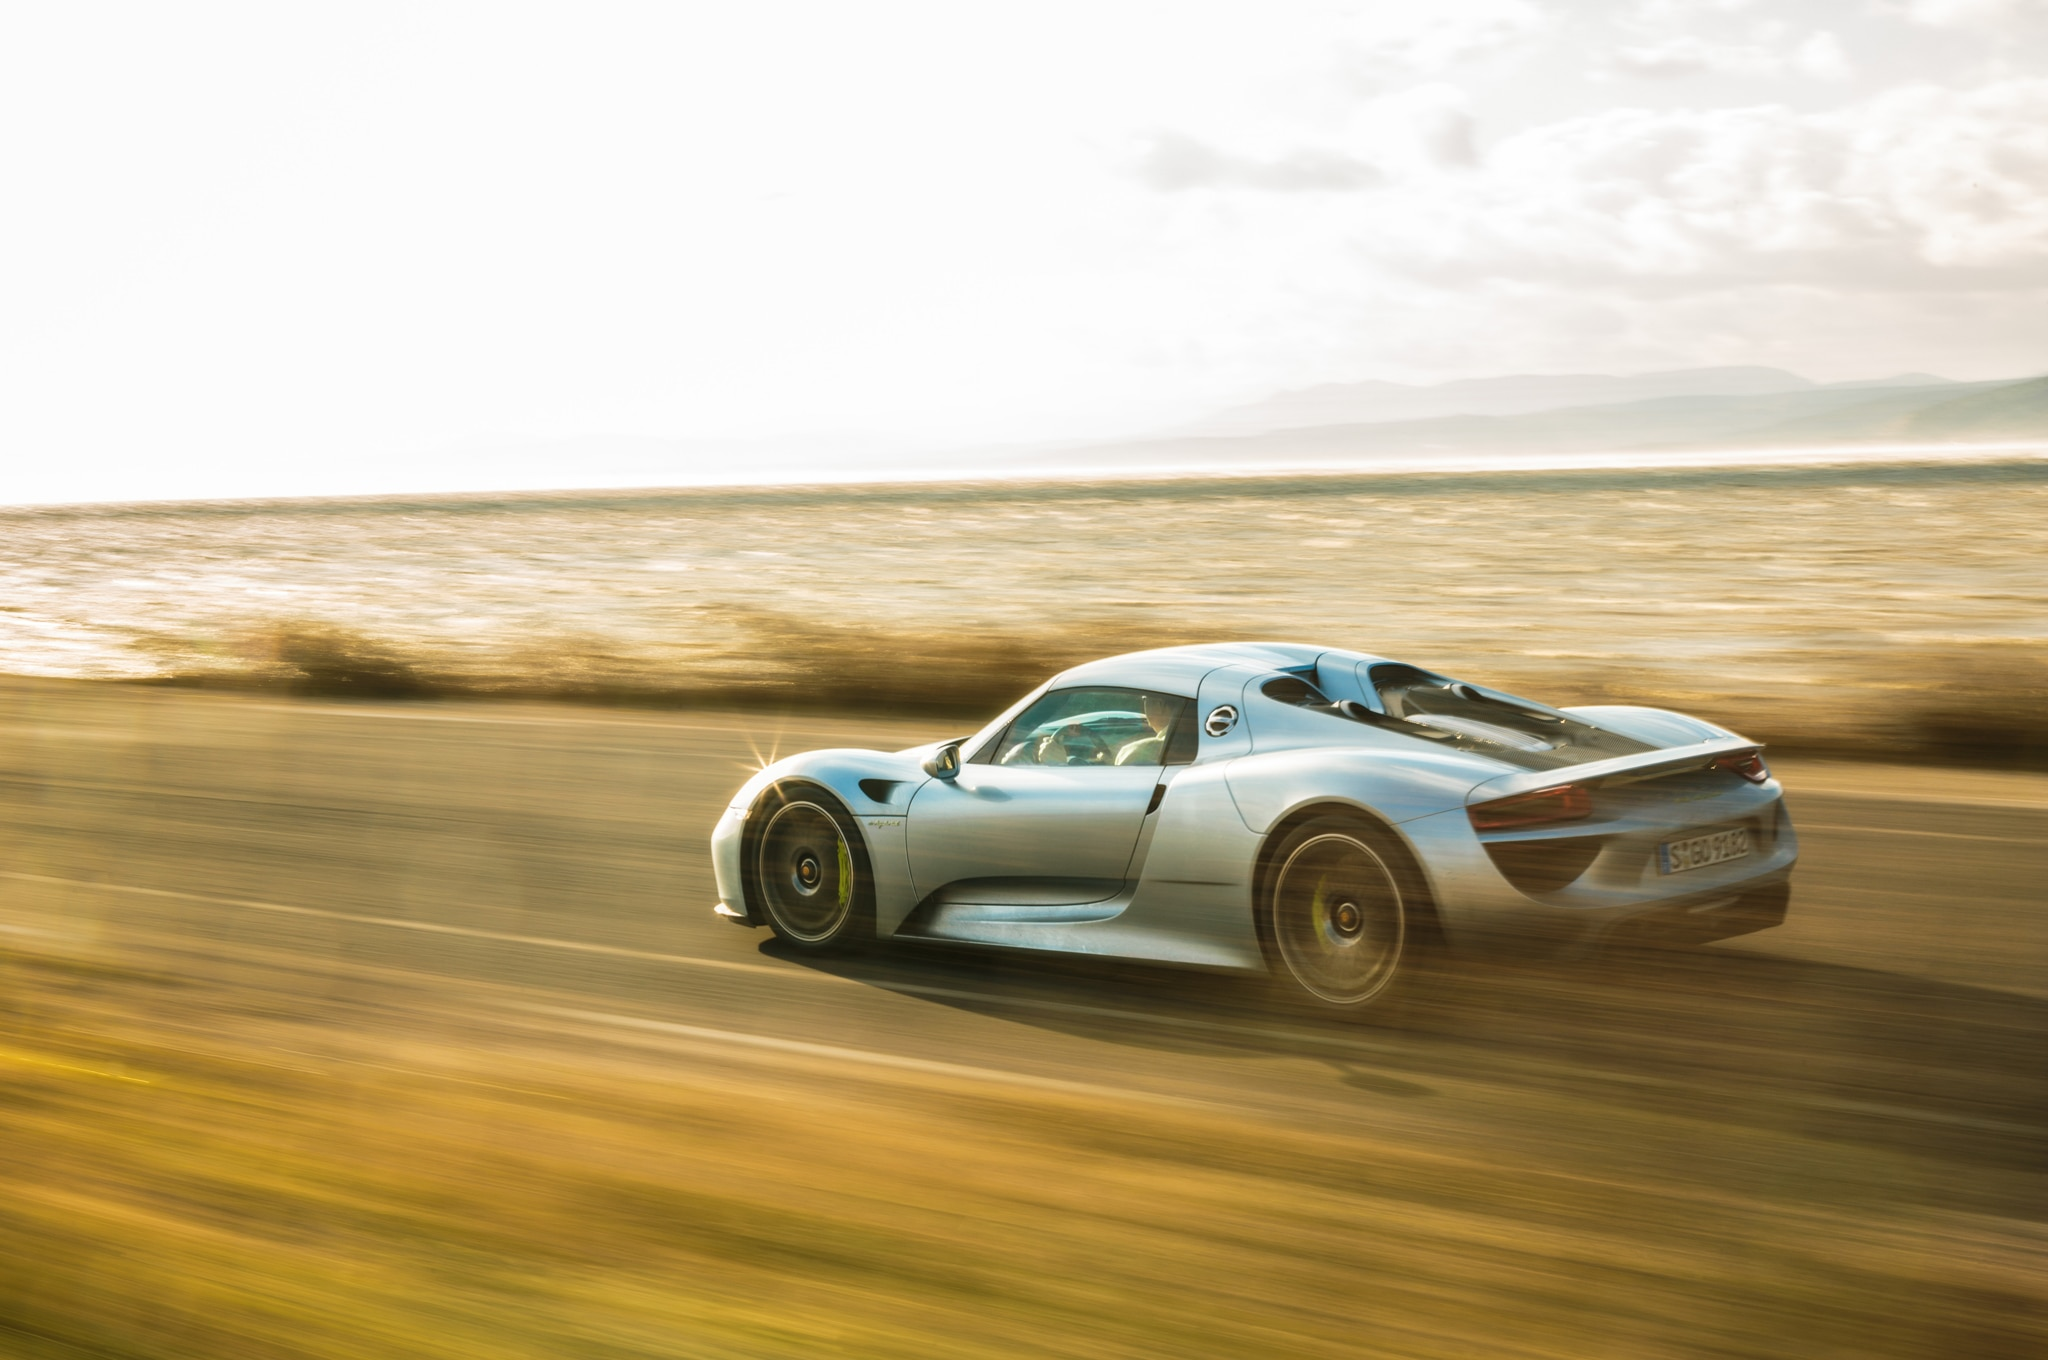 2014-Porsche-918-Spyder-in-Germany-side-in-motion Fabulous How Much Does the Porsche 918 Spyder Concept Cost In Real Racing 3 Cars Trend